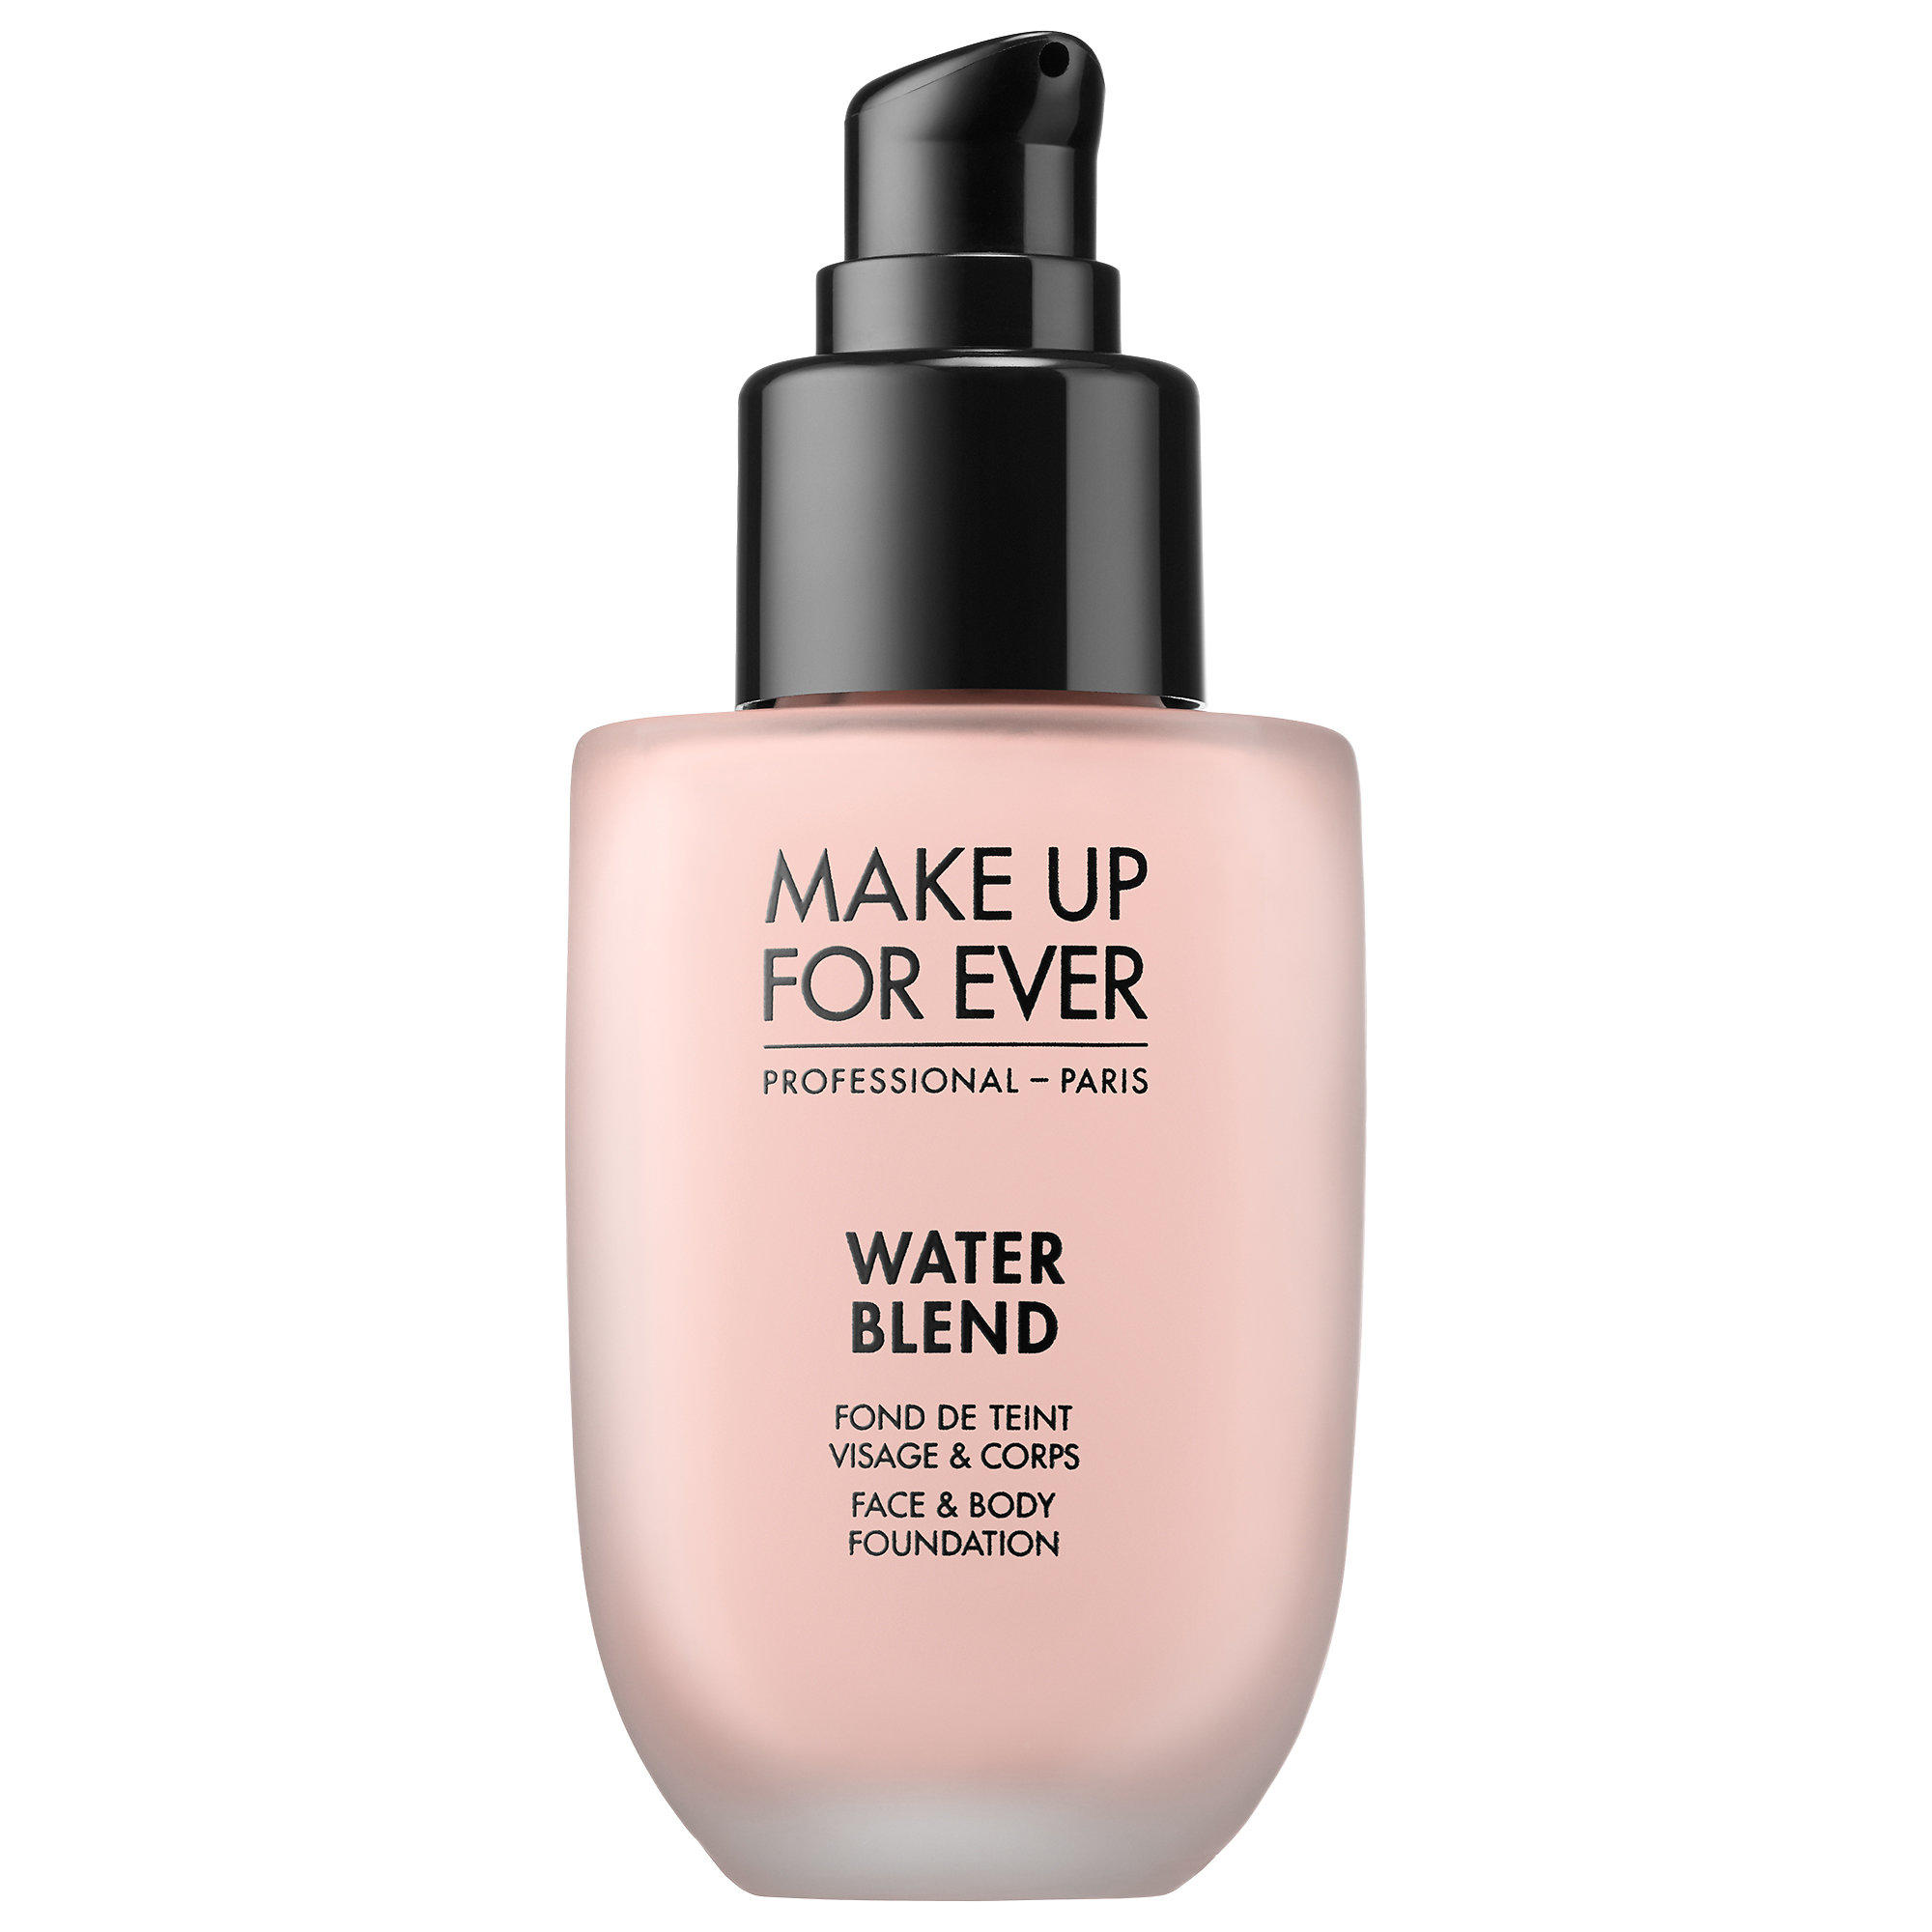 Makeup Forever Water Blend Face & Body Foundation R250